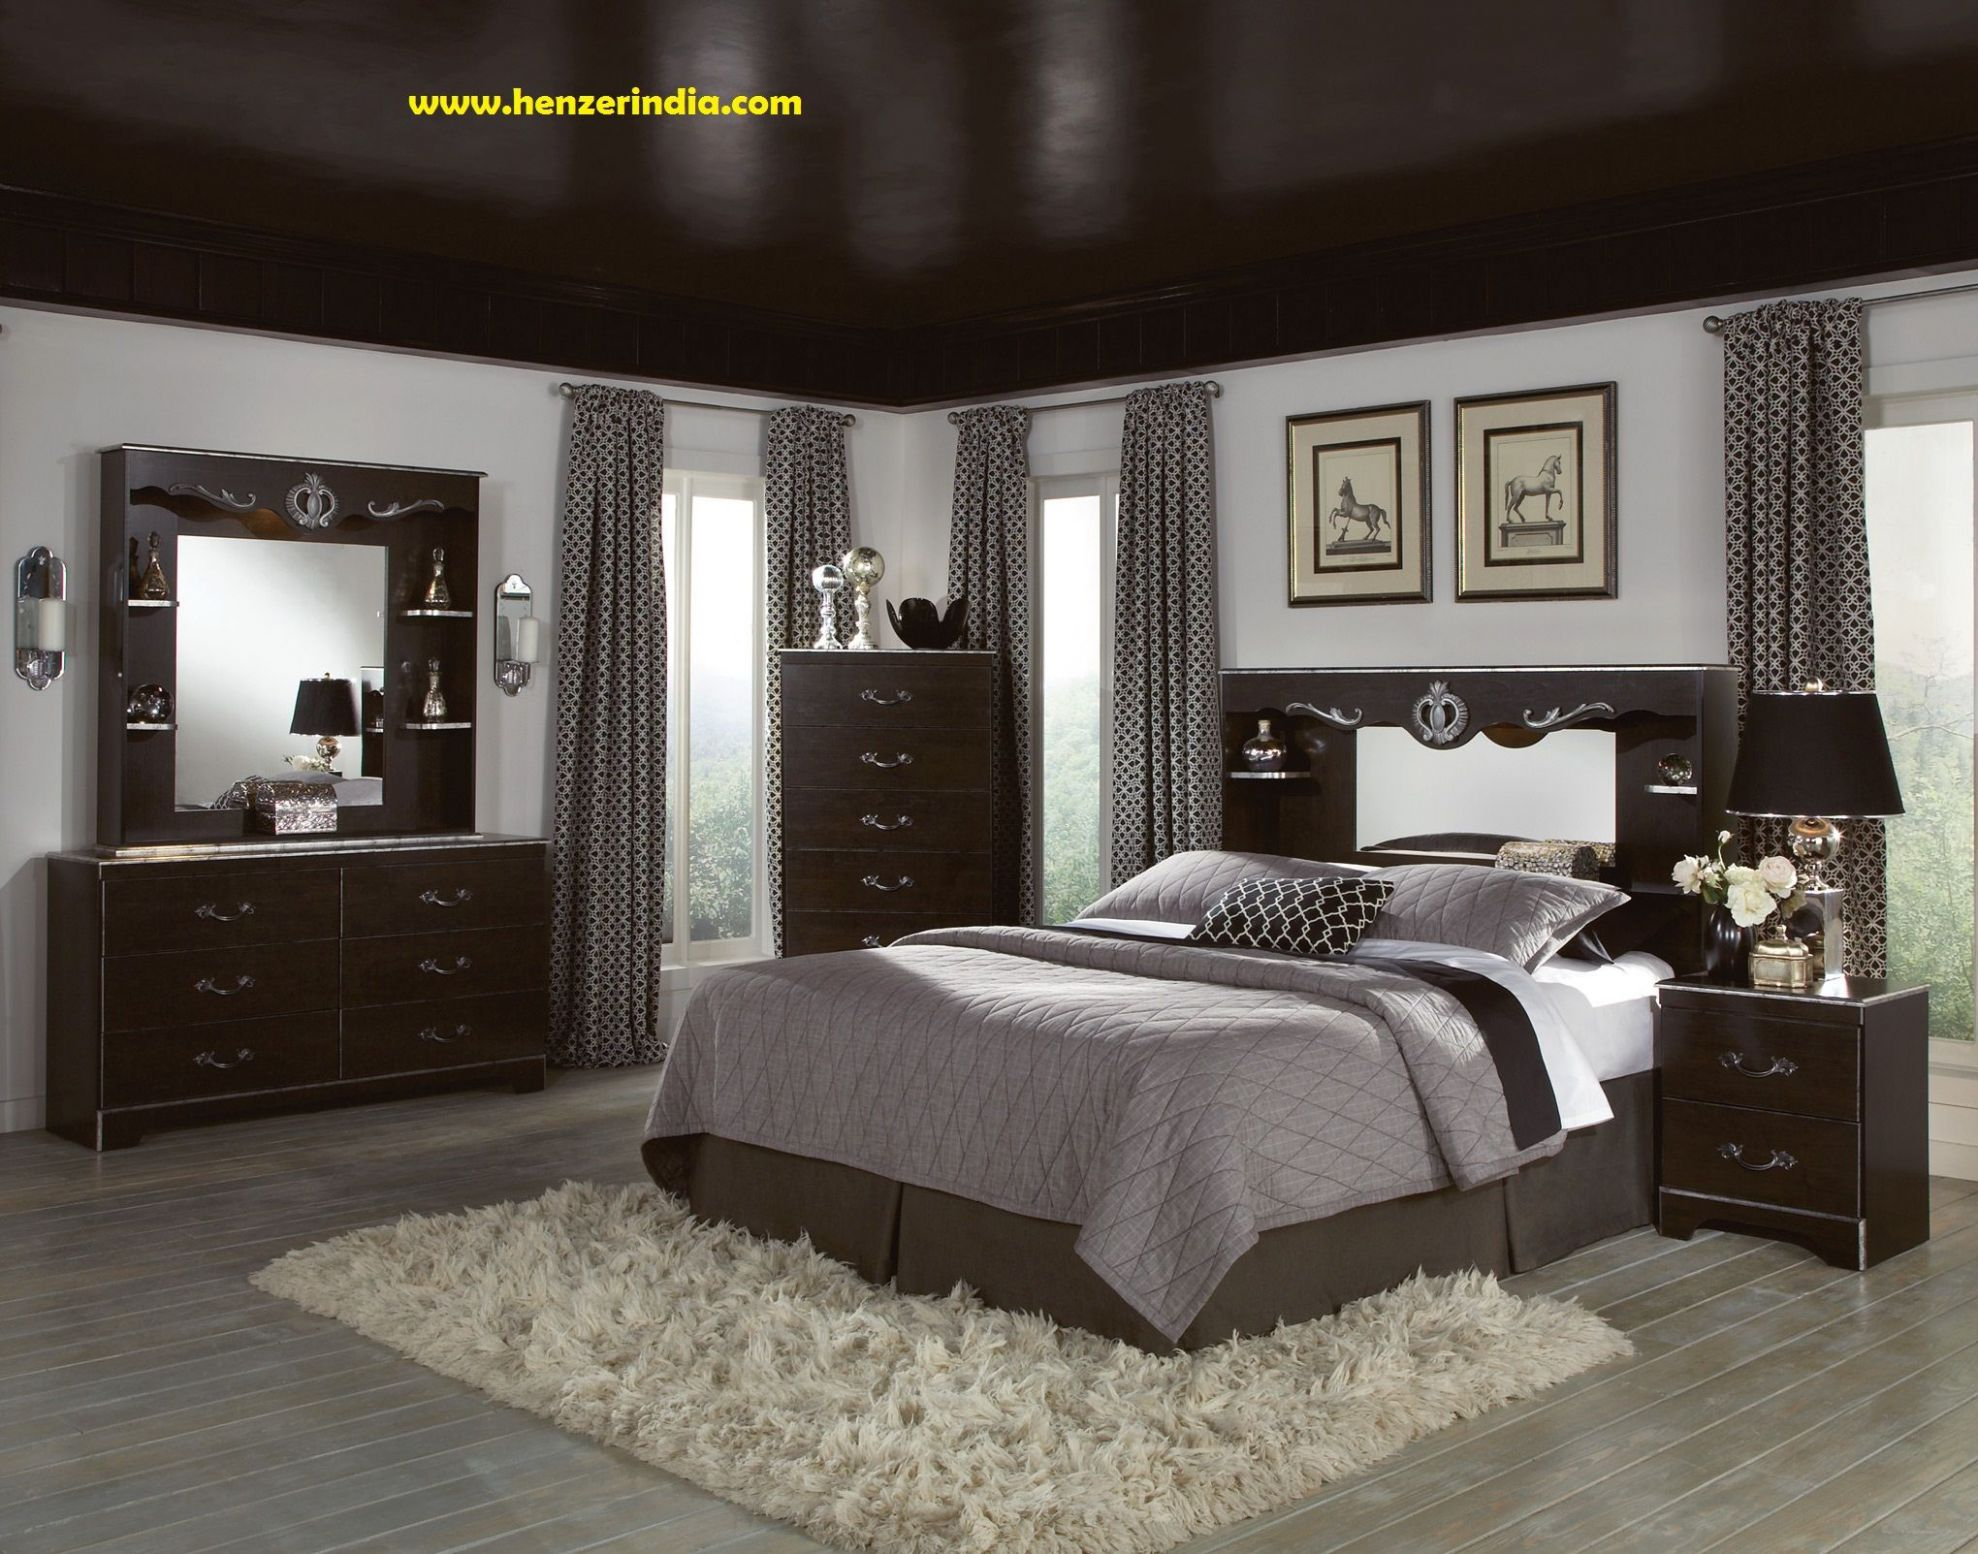 Pin by Henzer India on HENZER INDIA | Gray master bedroom, Dark ..